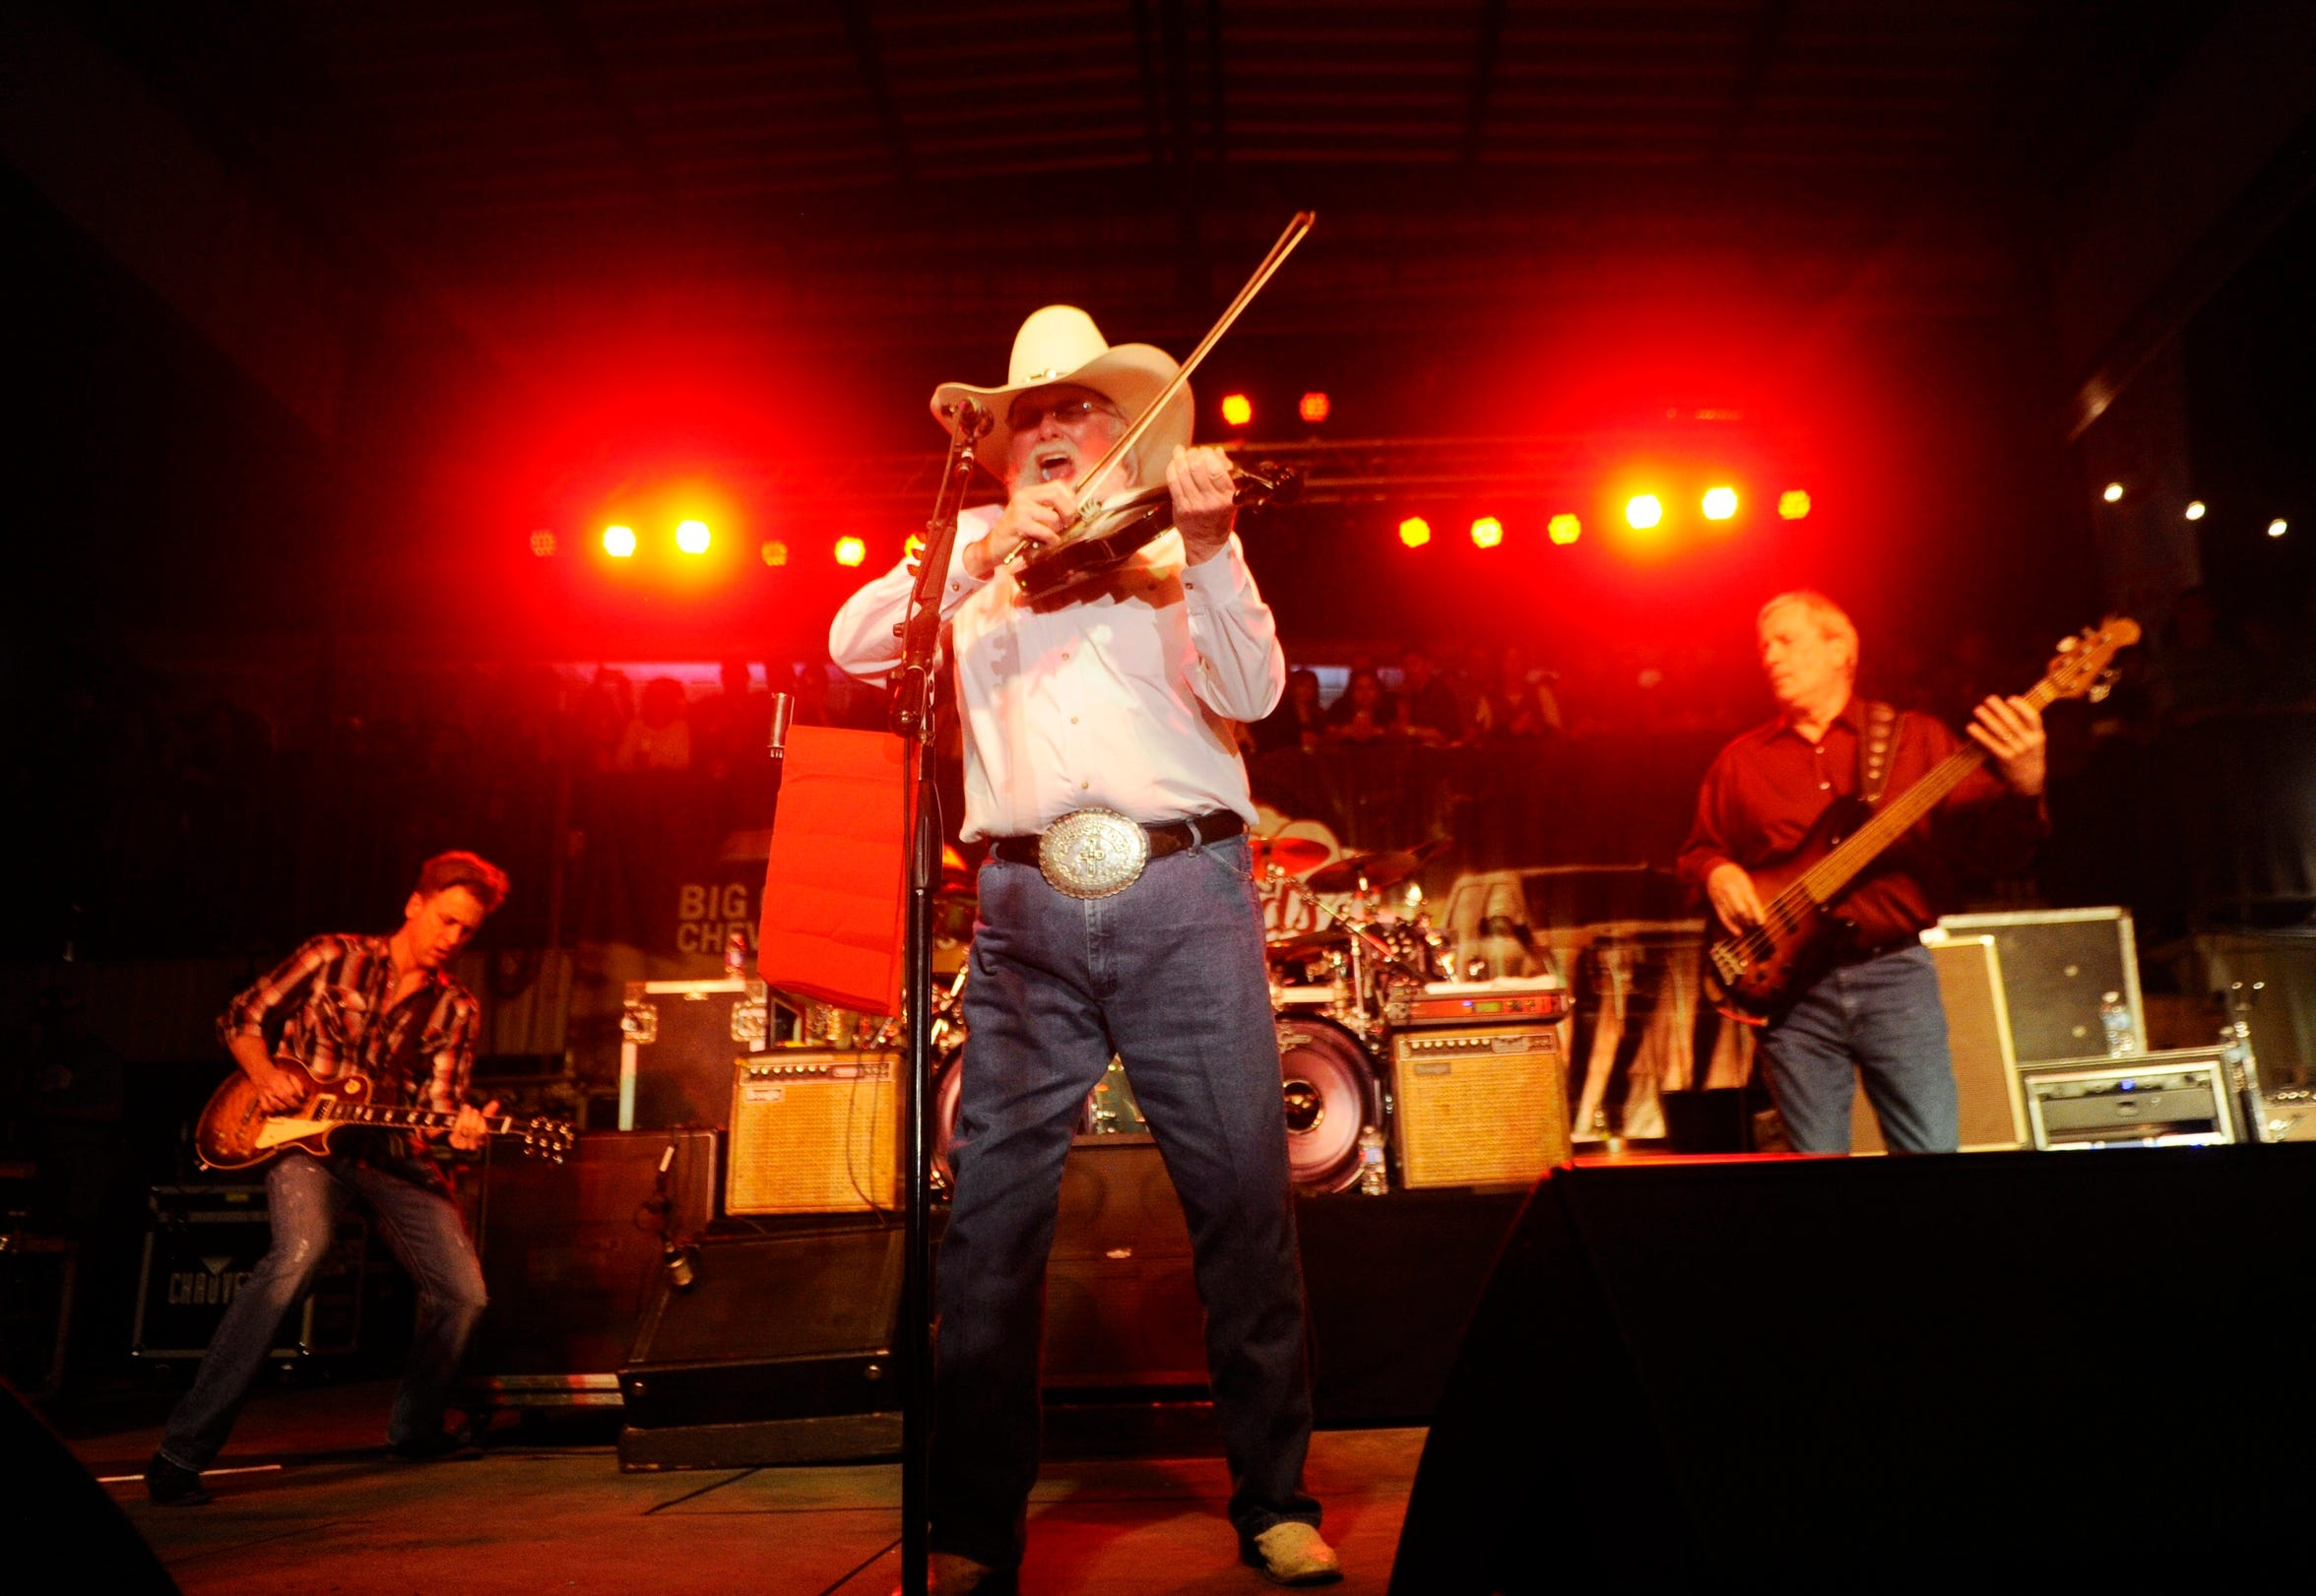 Charlie Daniels brought a fiddle on fire to the 2015 Outlaws show.